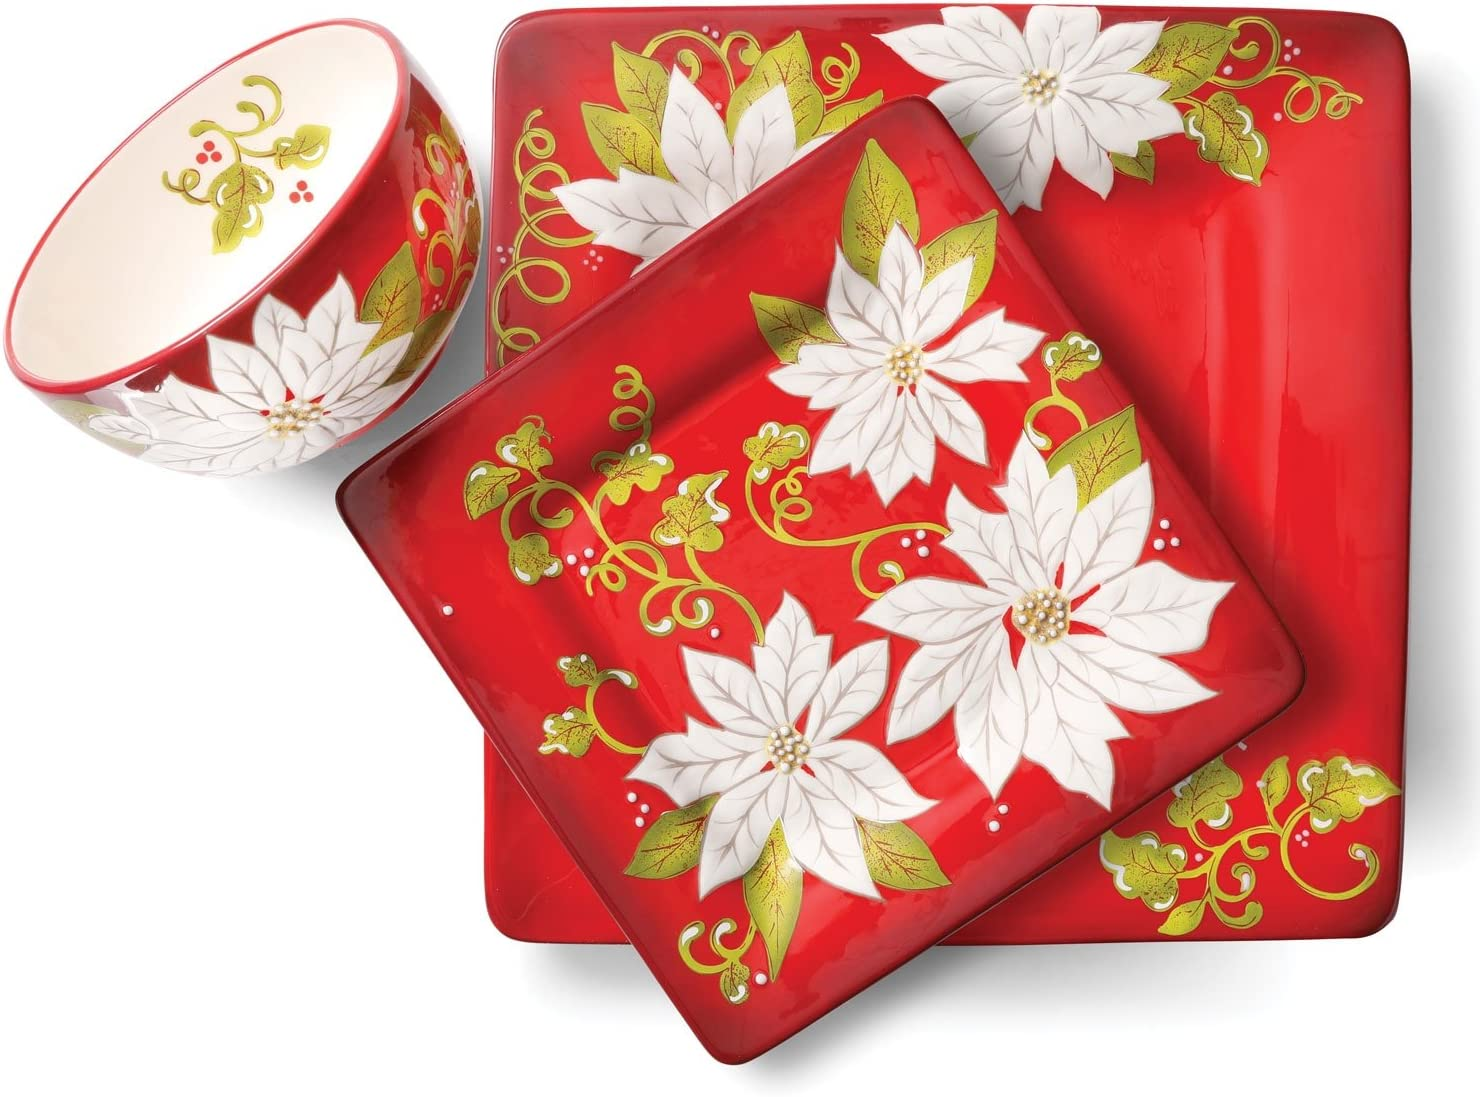 Laurie Gates Pleasant Poinsettia 12 Piece Dinnerware Set Red Christmas Dishes Amazon Co Uk Kitchen Home